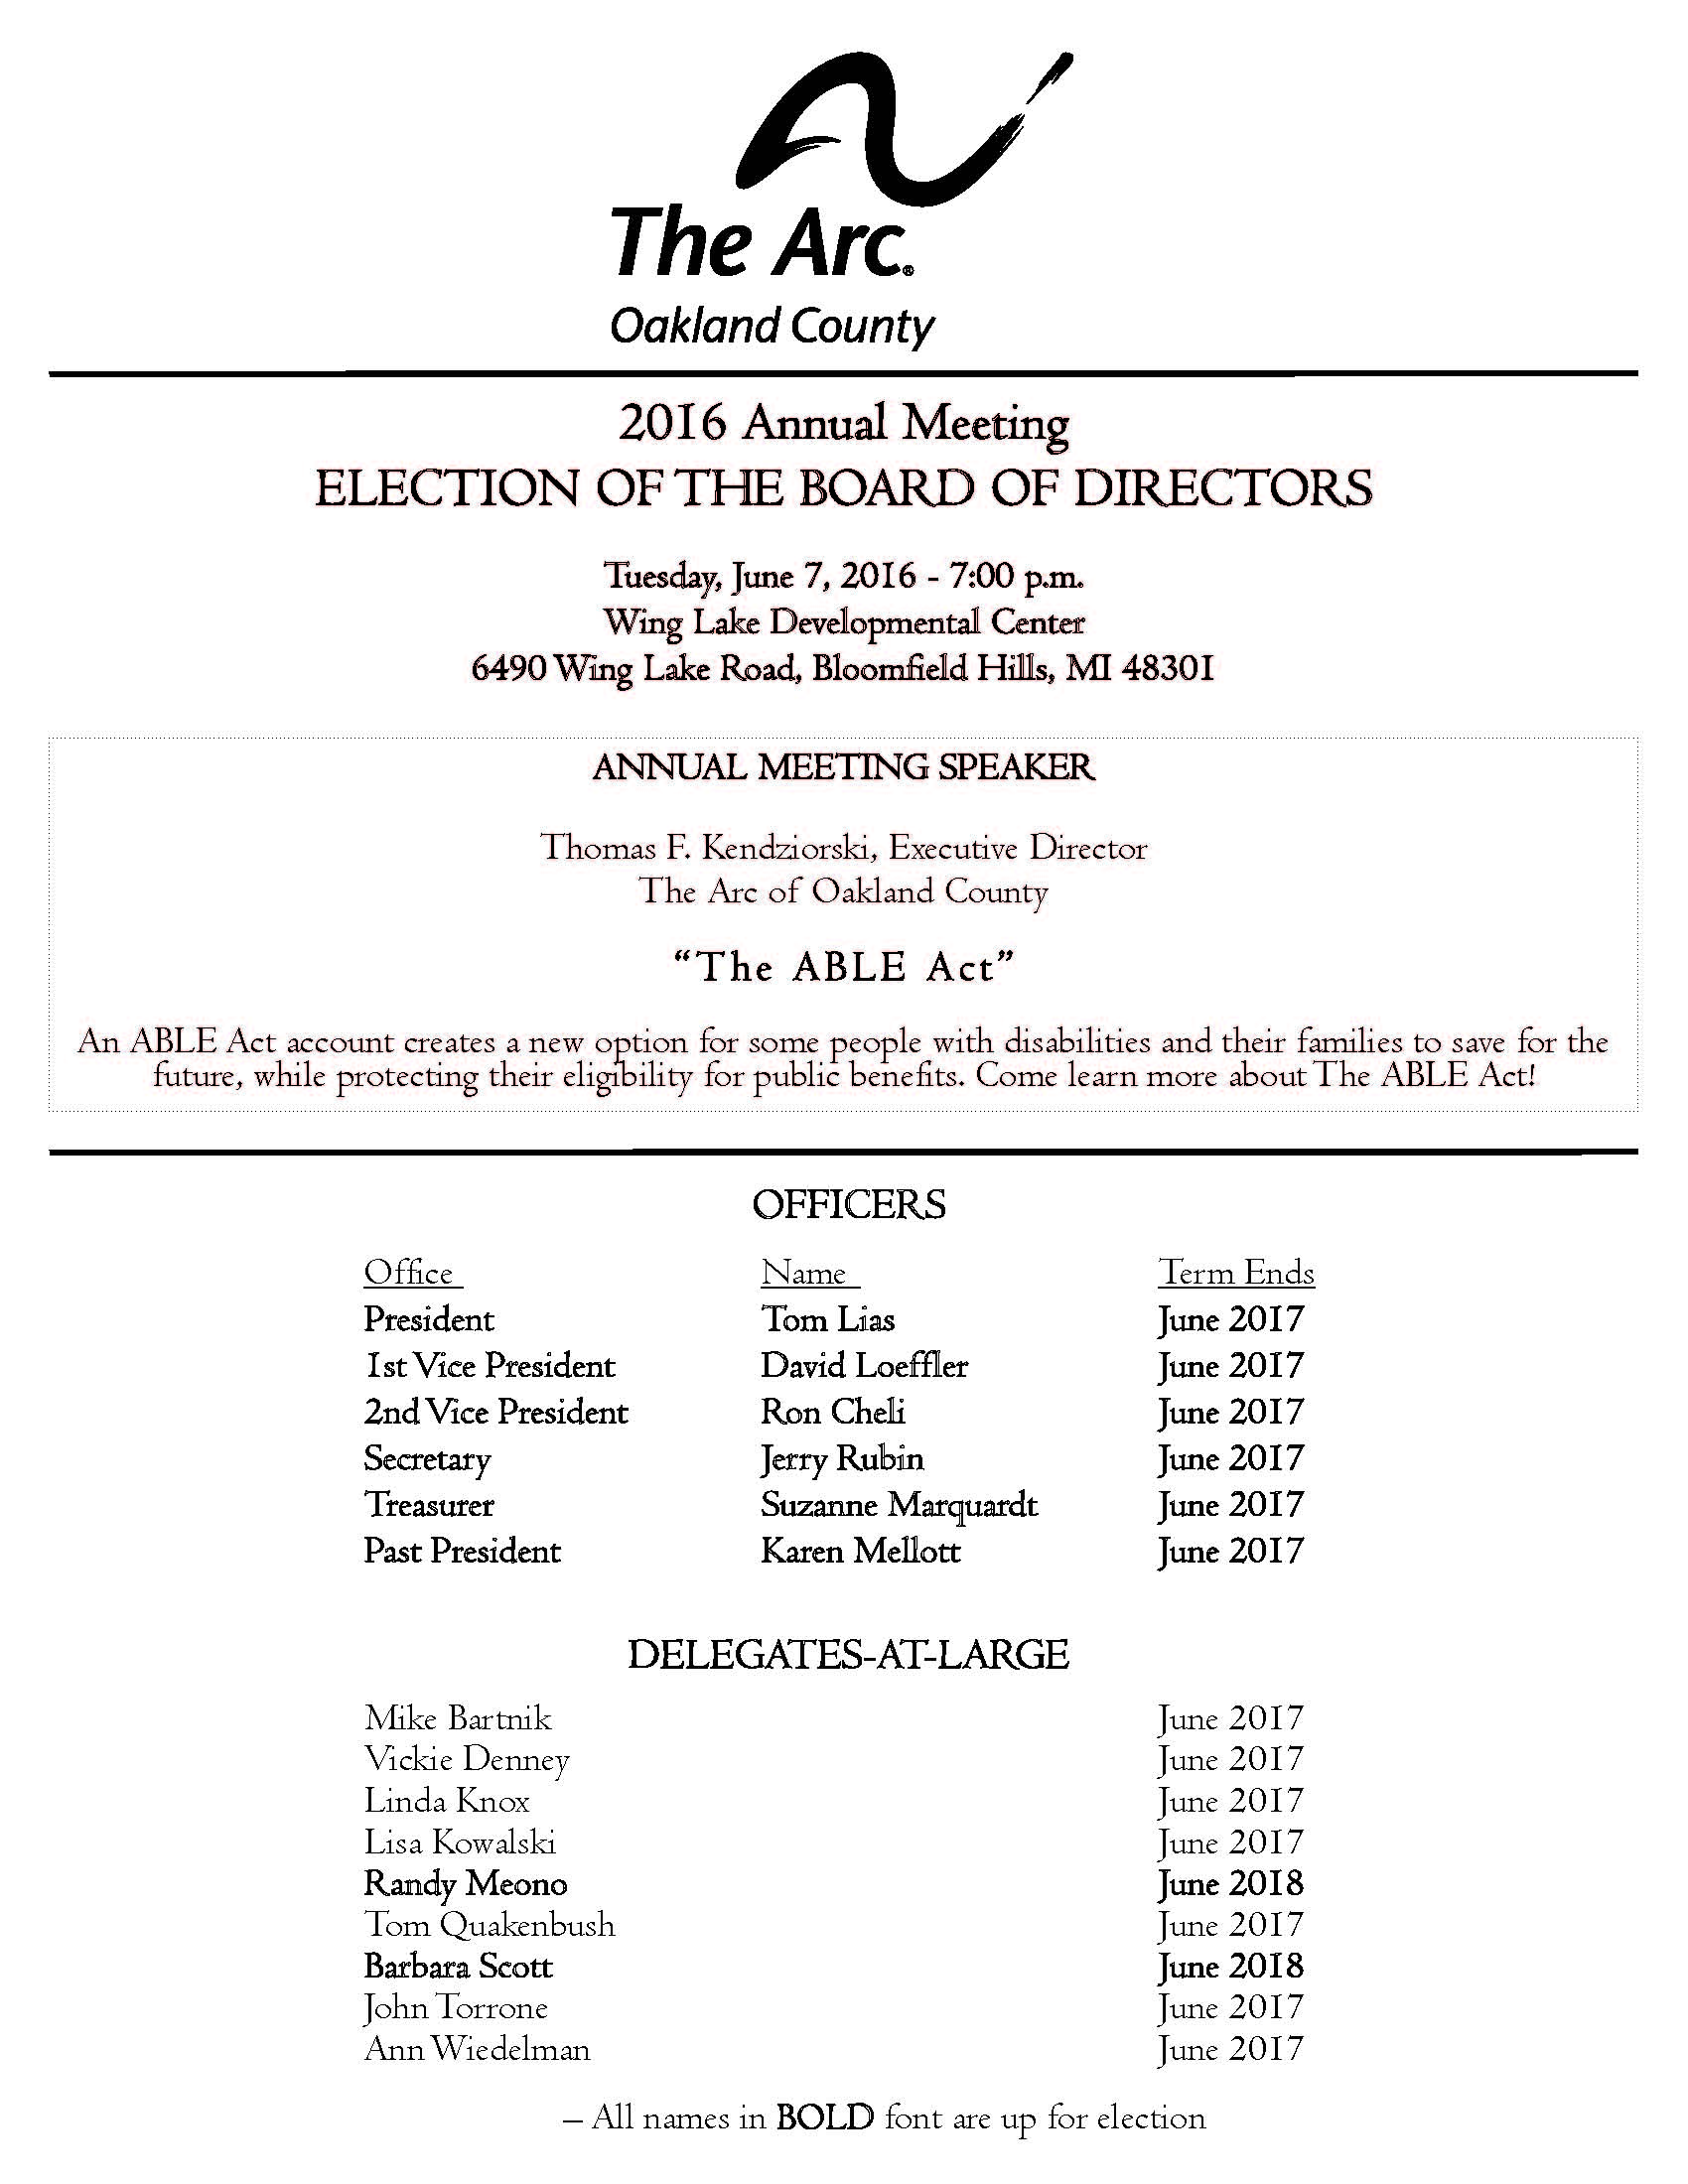 The Arc of Oakland County's 2016 Annual Meeting & Election of the Board of Directors_Page_1